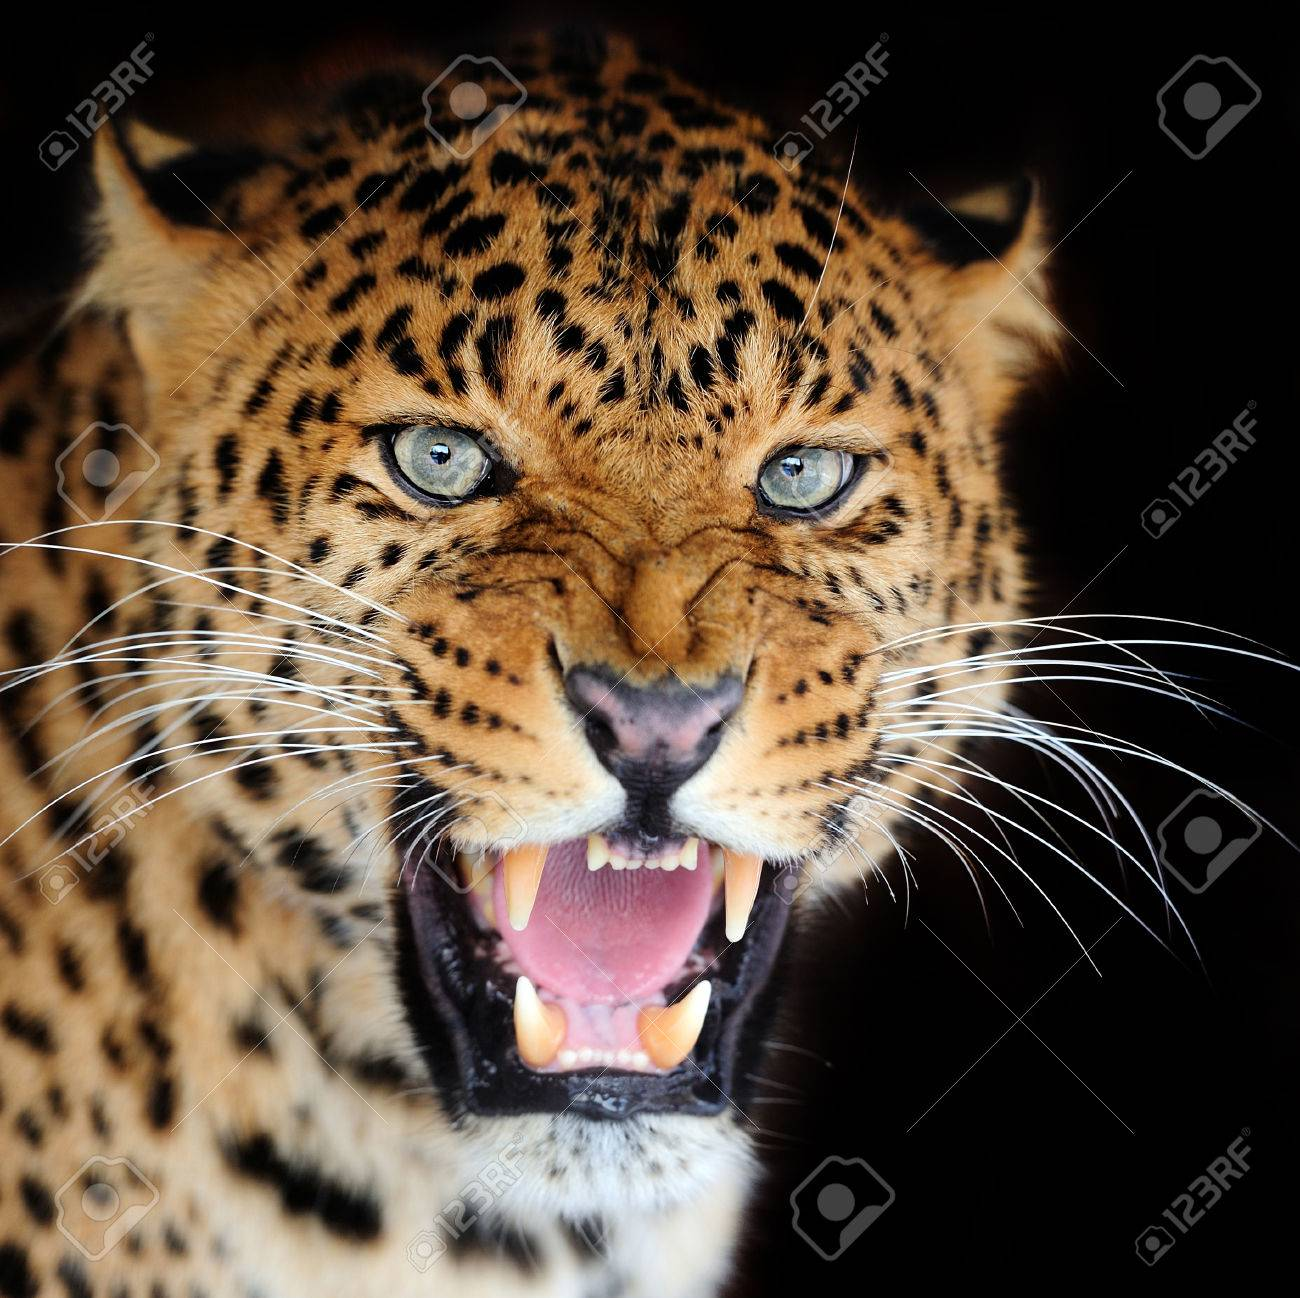 Leopard portrait on dark background Standard-Bild - 38877770